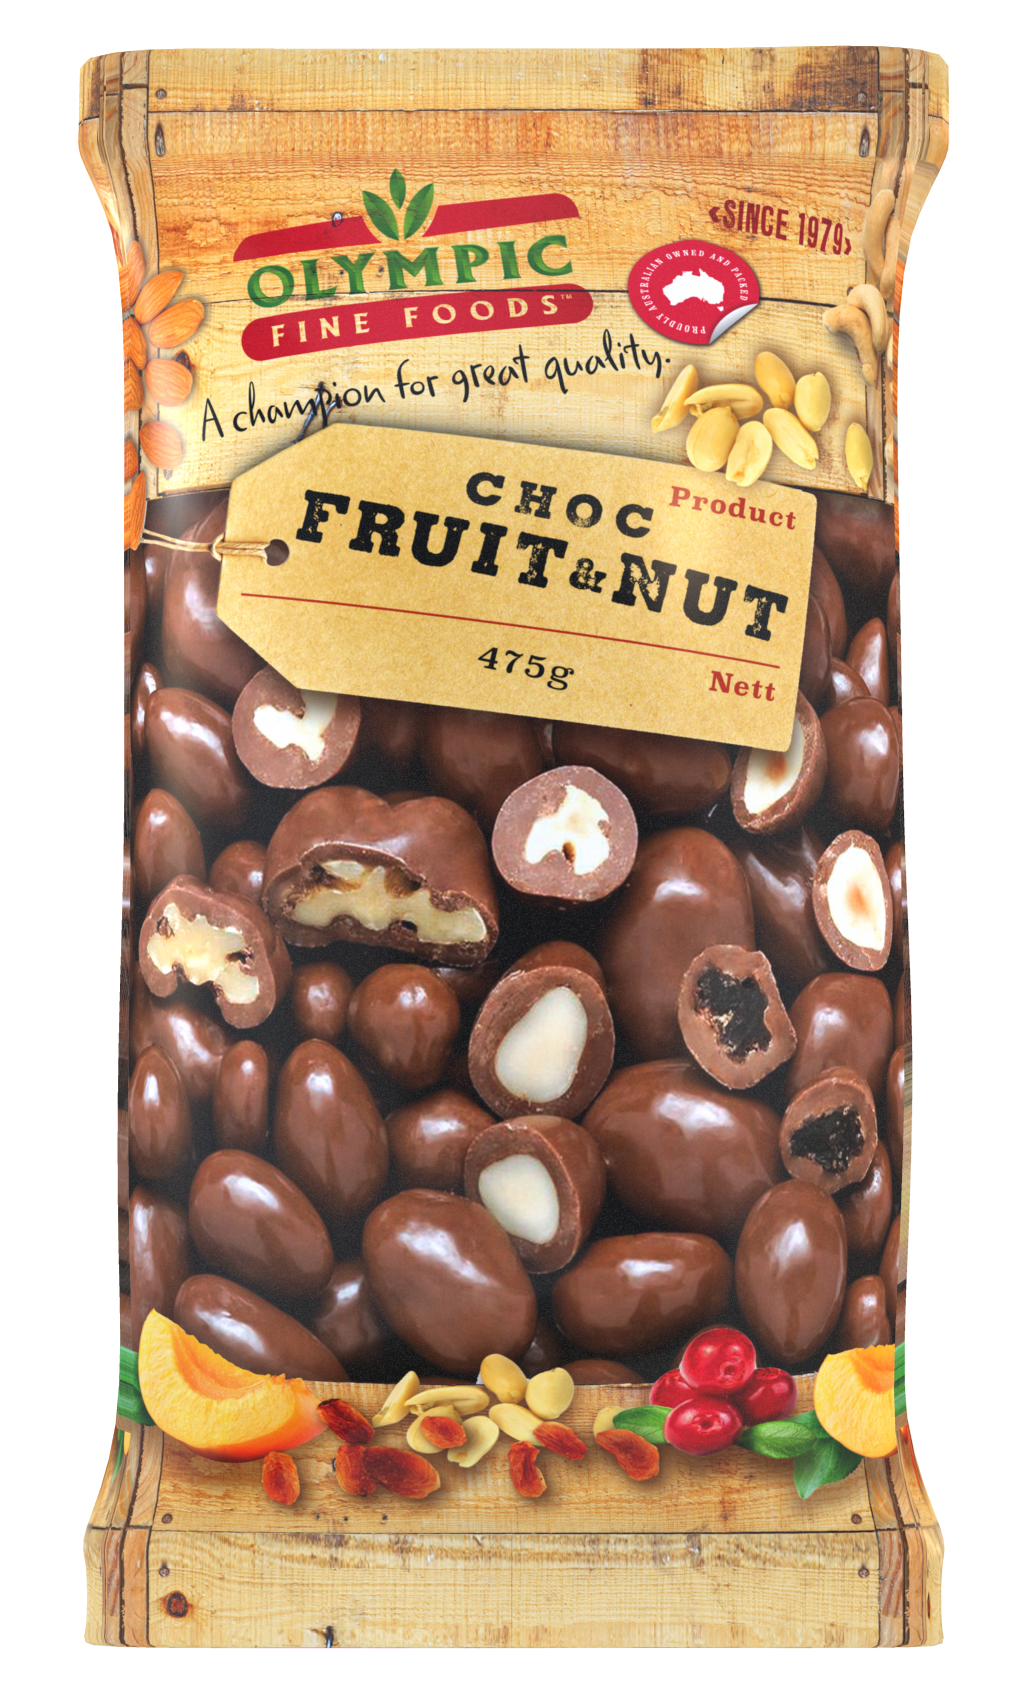 Choc Fruit & Nut